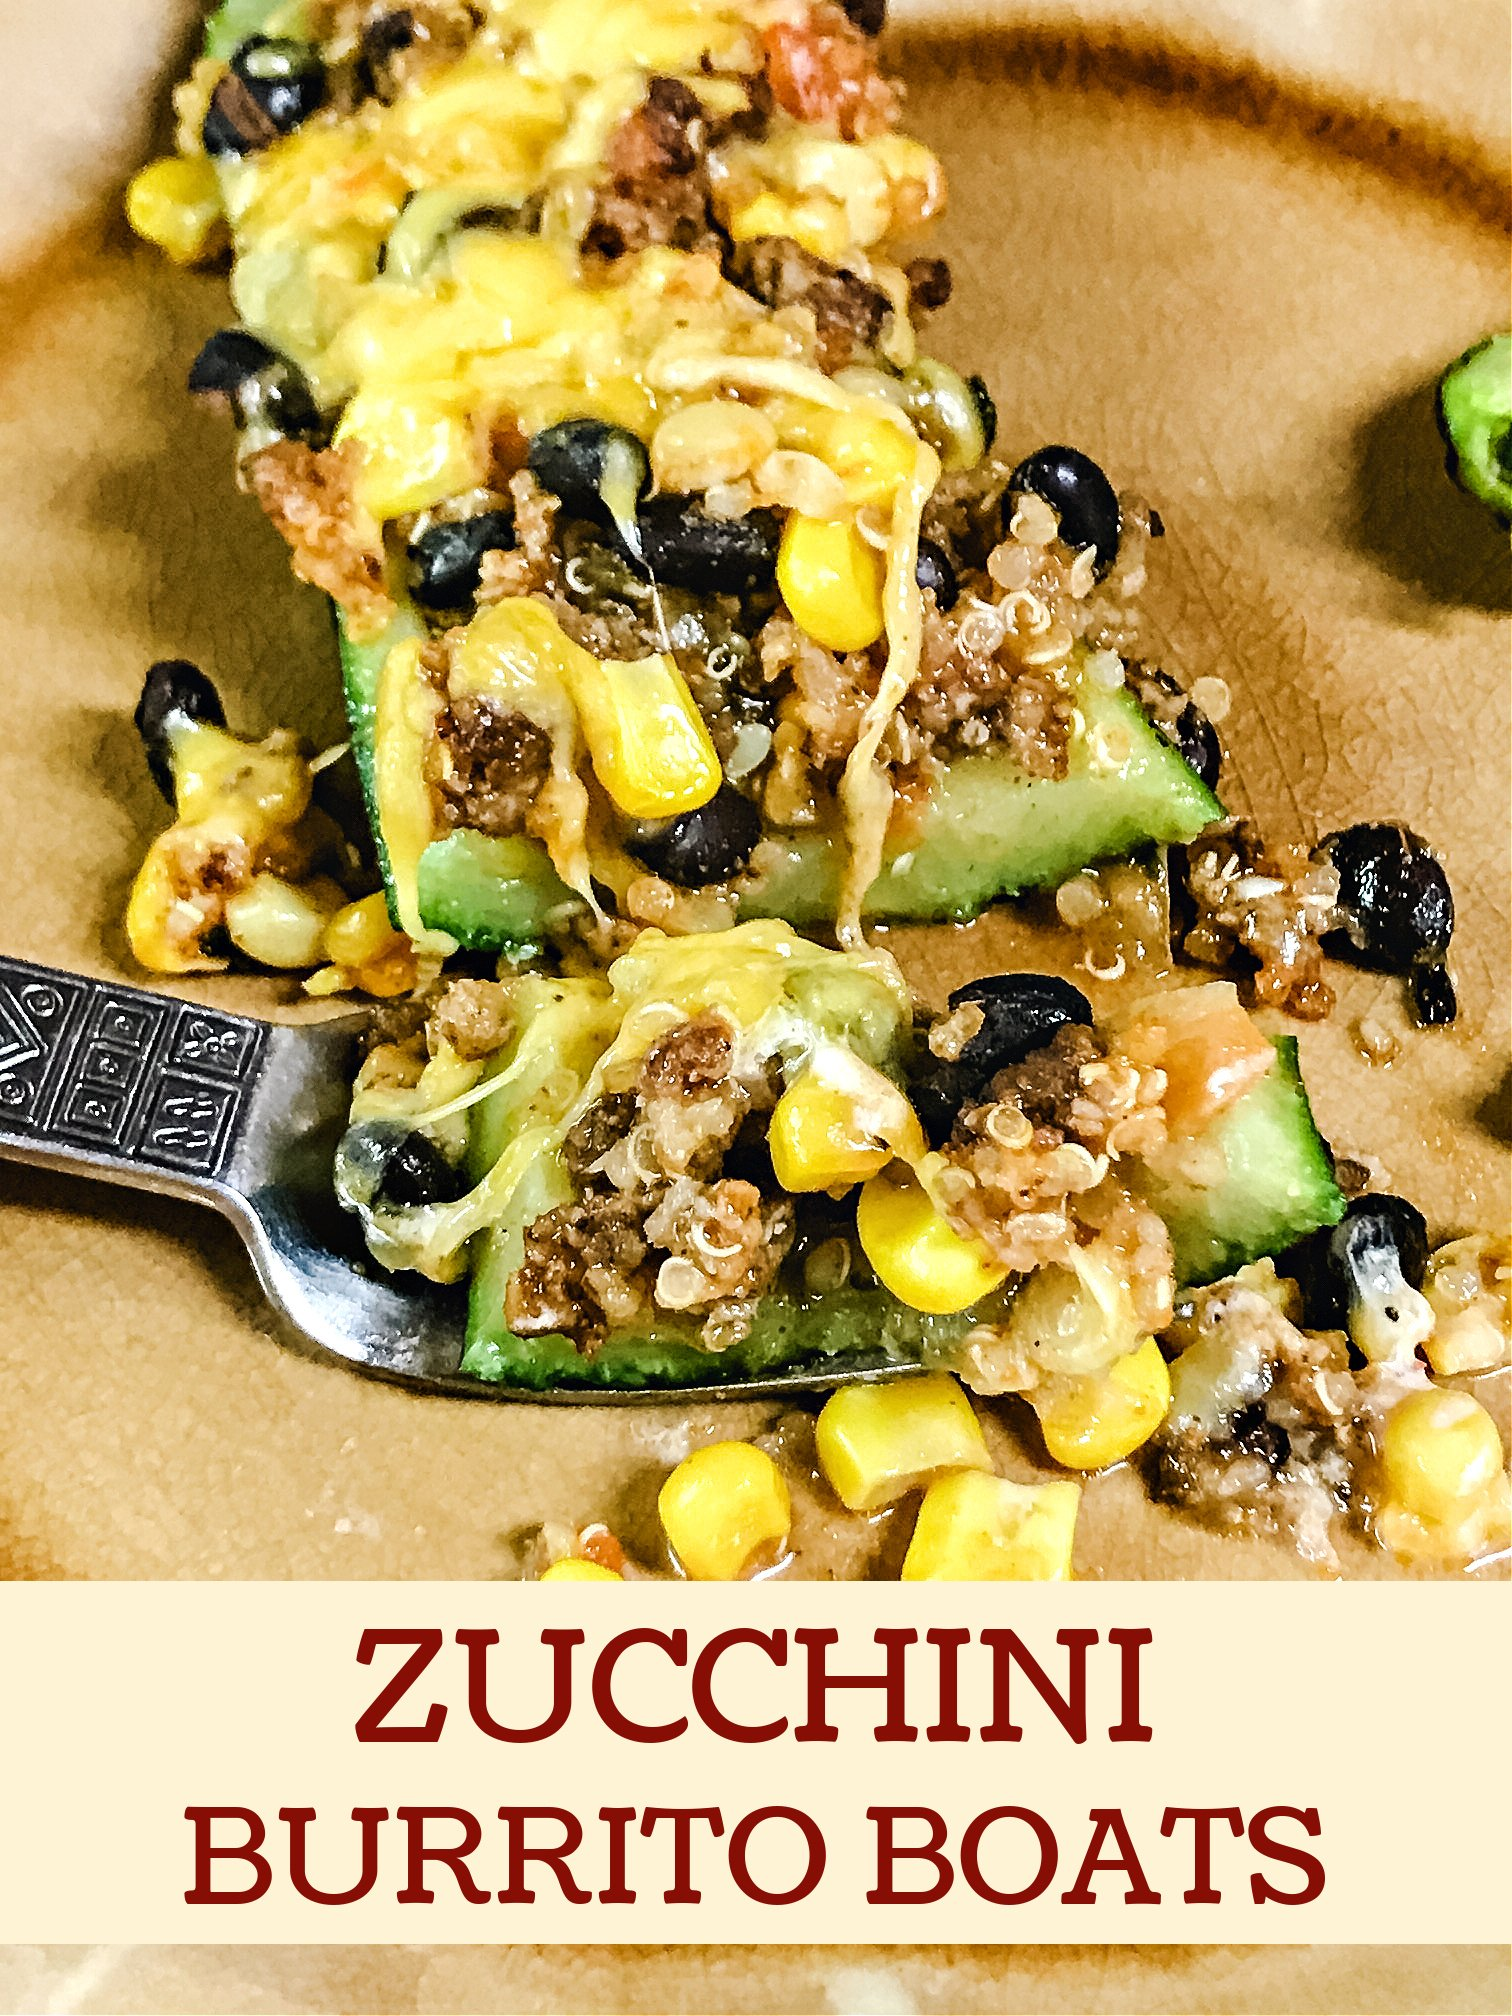 Forkful of black bean and corn filling with a zucchini.